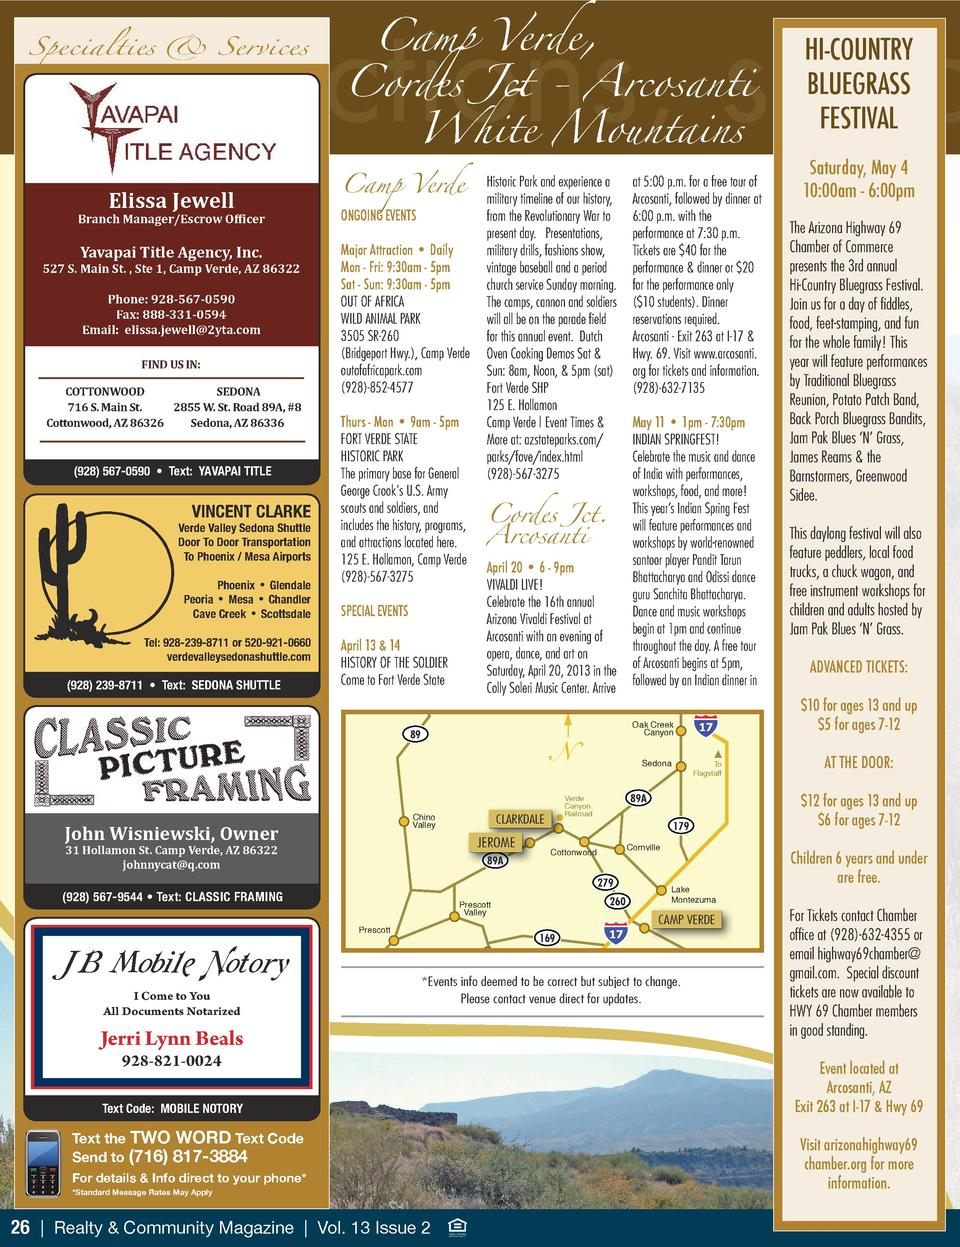 Camp Verde,  attractions, spec  Specialties   Services  Elissa Jewell  Branch Manager Escrow Officer  Yavapai Title Agency...